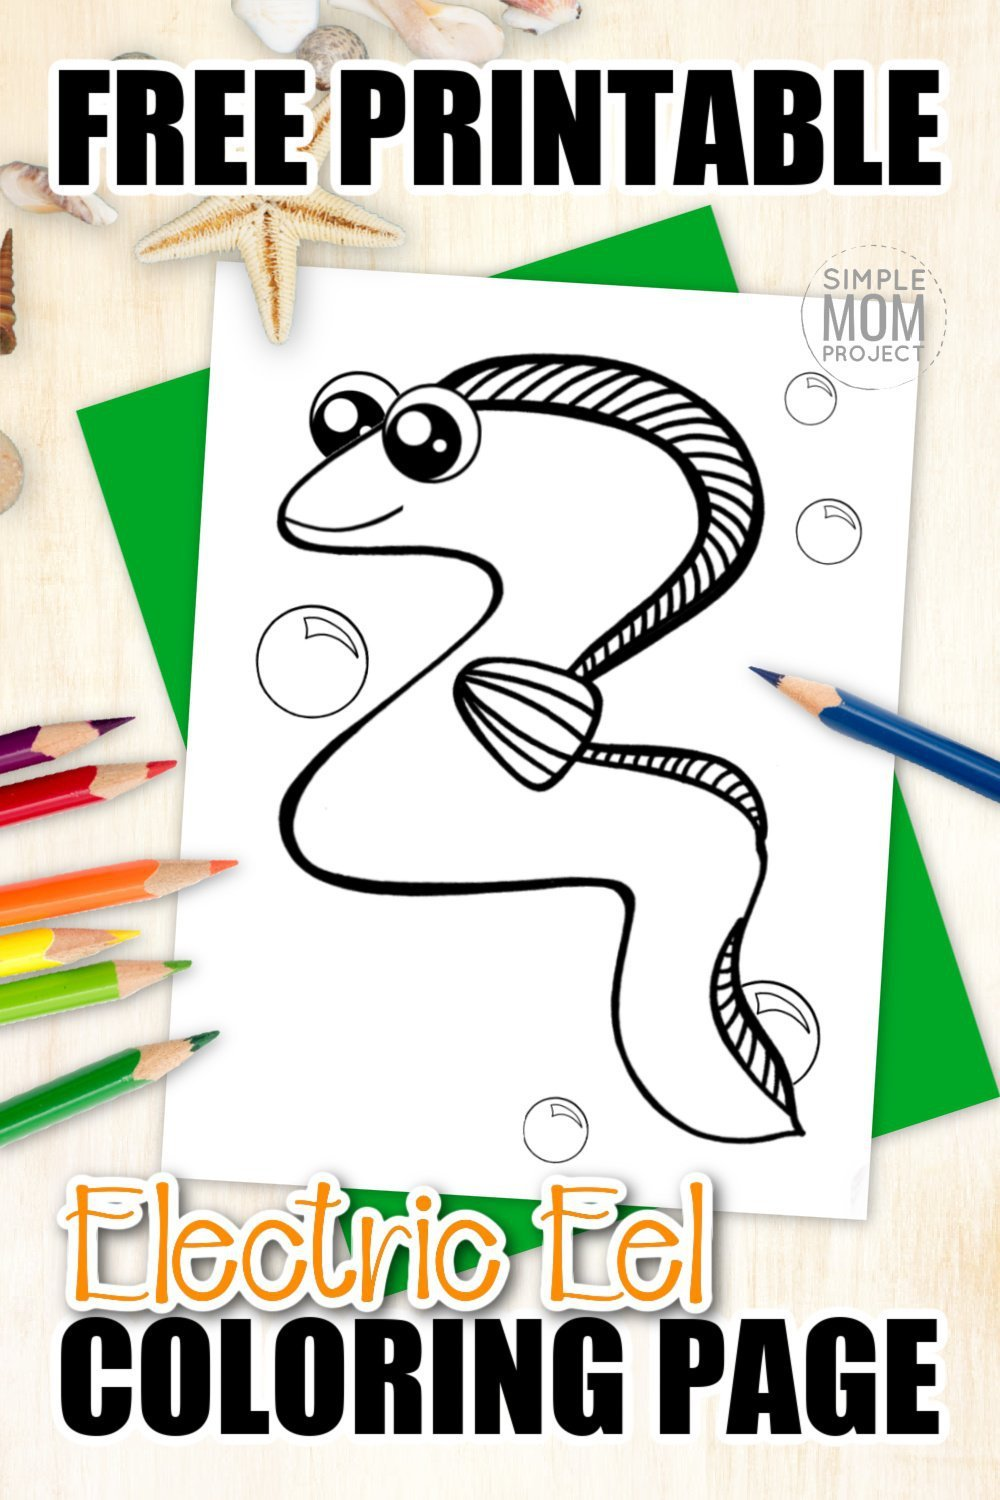 Electric Eel Fish are just another way to teach about the letter E. Why not add this adorable eel coloring page to your sea animal alphabet collection. Draw or sketch your favorite electric designs on him or just simply color him green. As a friend to the moray, guler and wolf eel, this fun eel coloring sheet is the perfect art project for kids of all ages! #eelcoloringpages #electriceelcoloringpage #SimpleMomProject